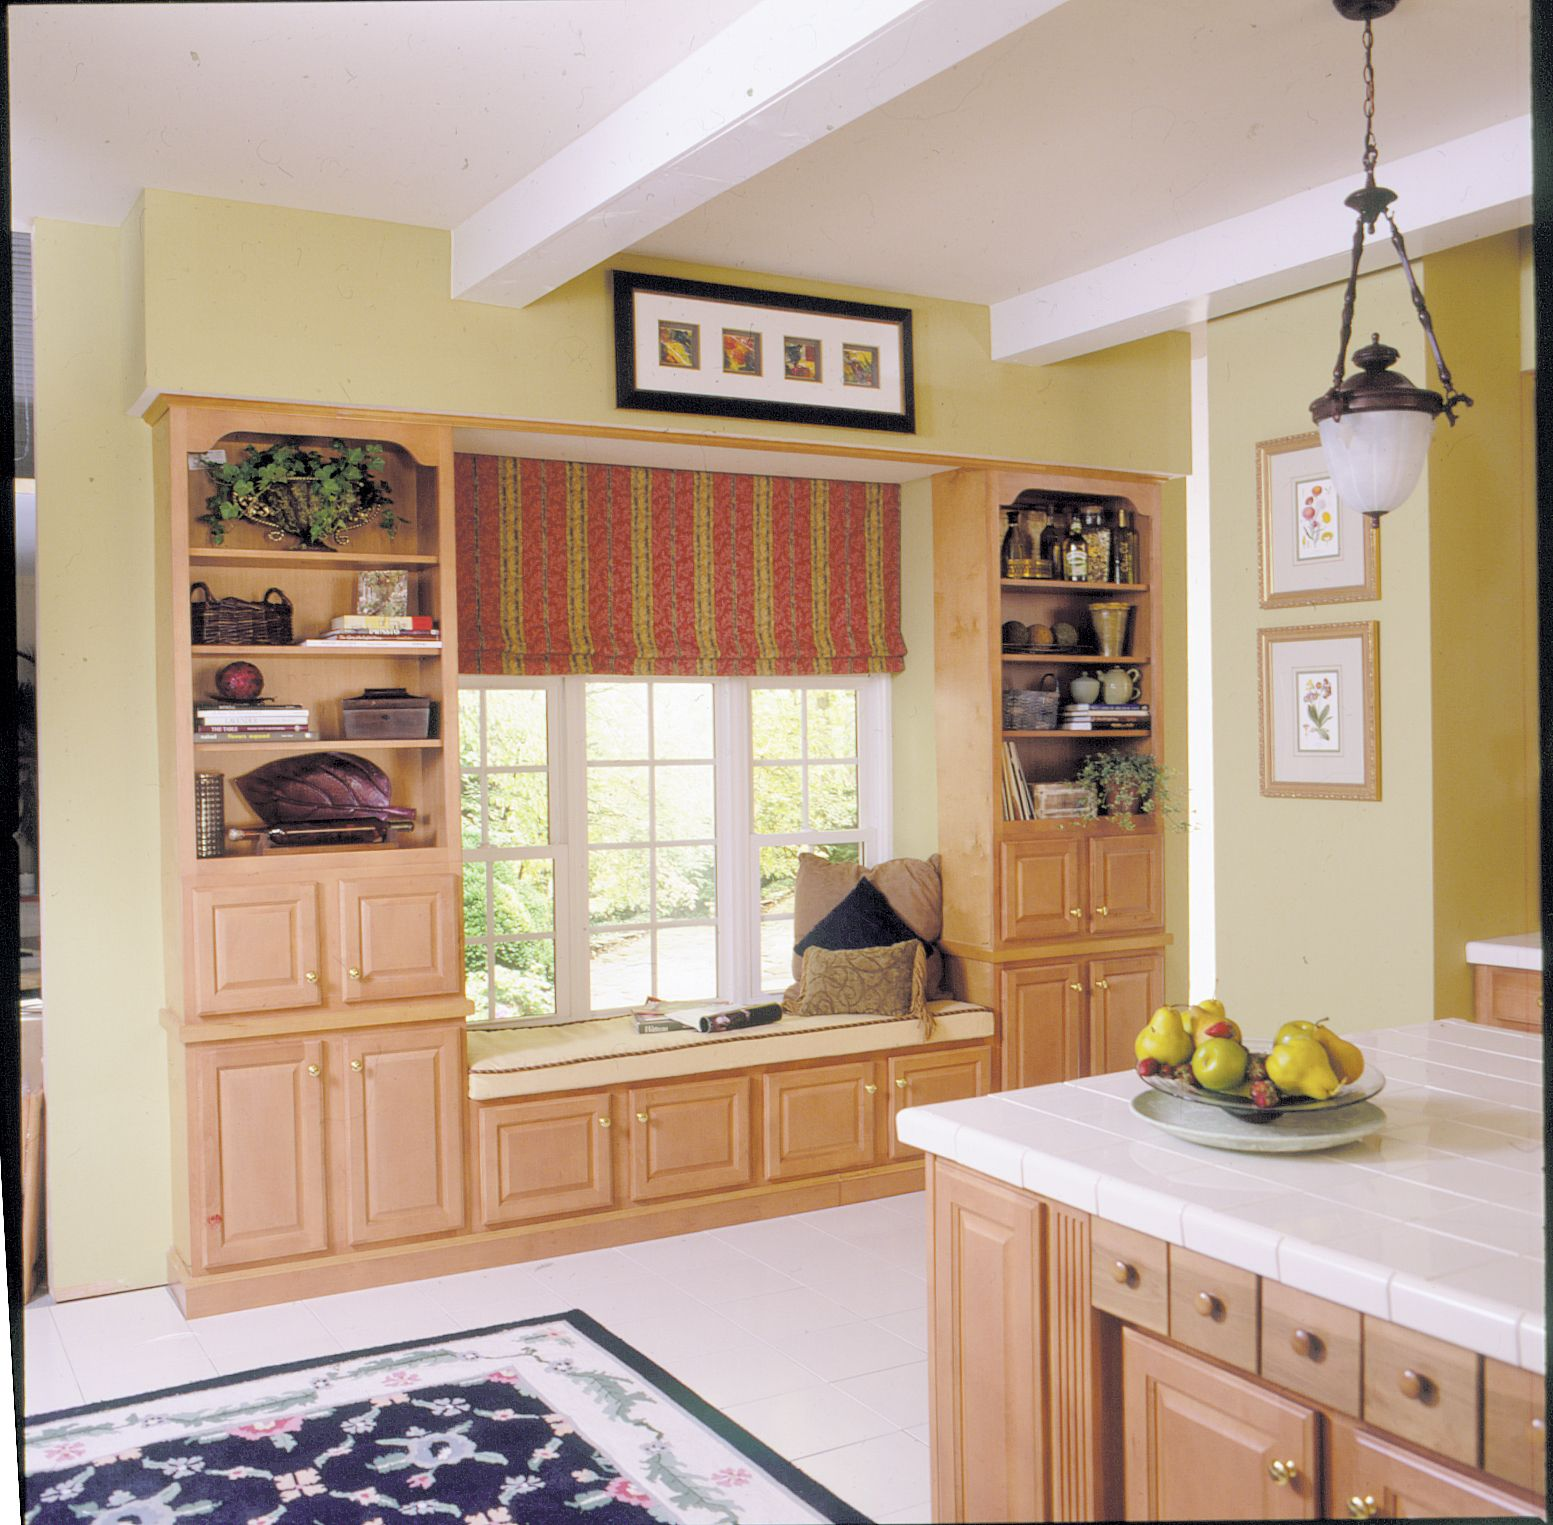 Window kitchen cabinets  how to build a window seat  house love  laundry room  pinterest